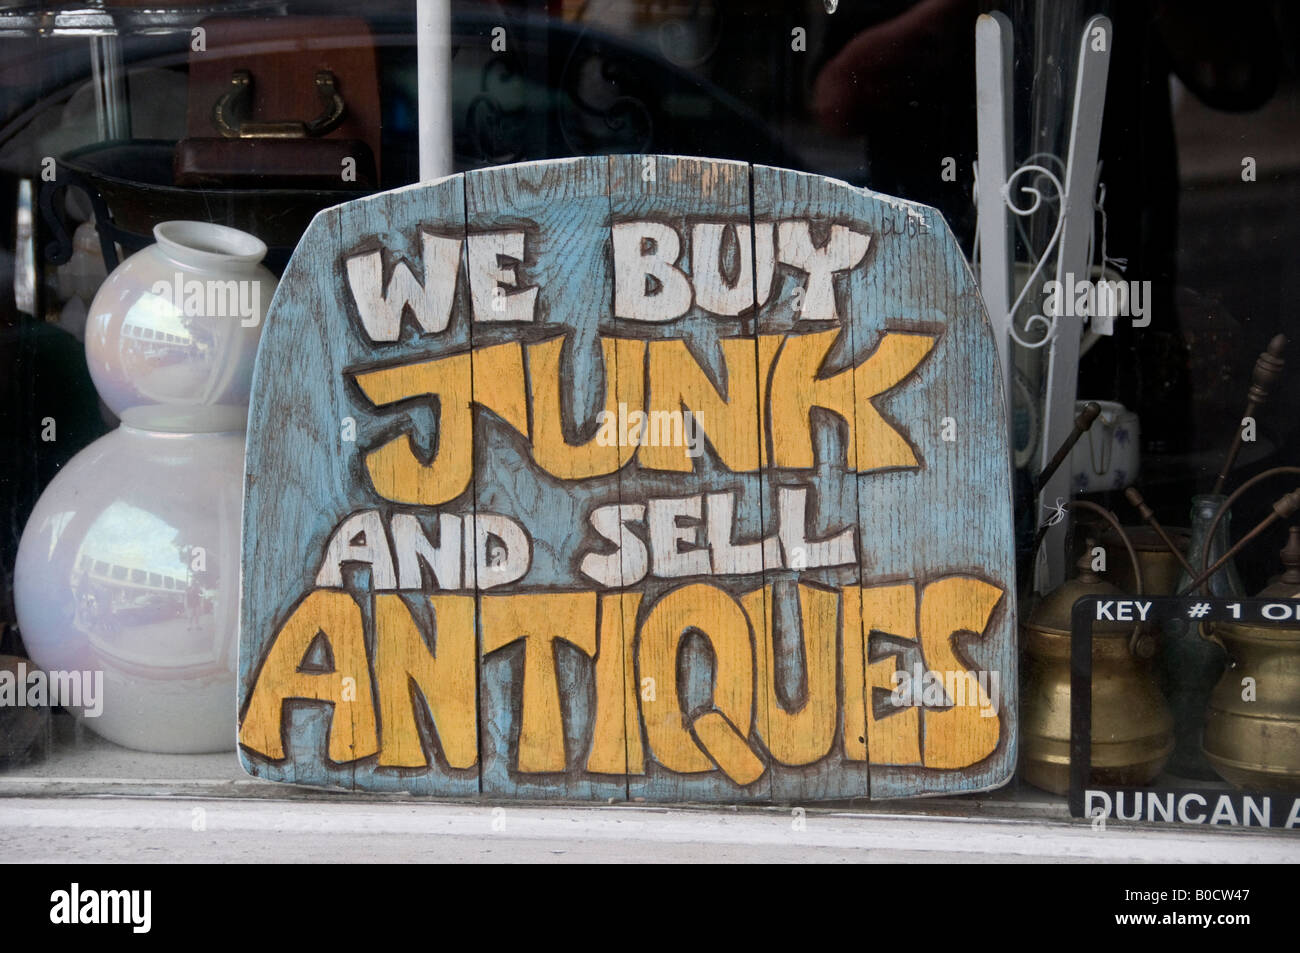 Sign in shop window in Key West Florida We buy junk and sell ...